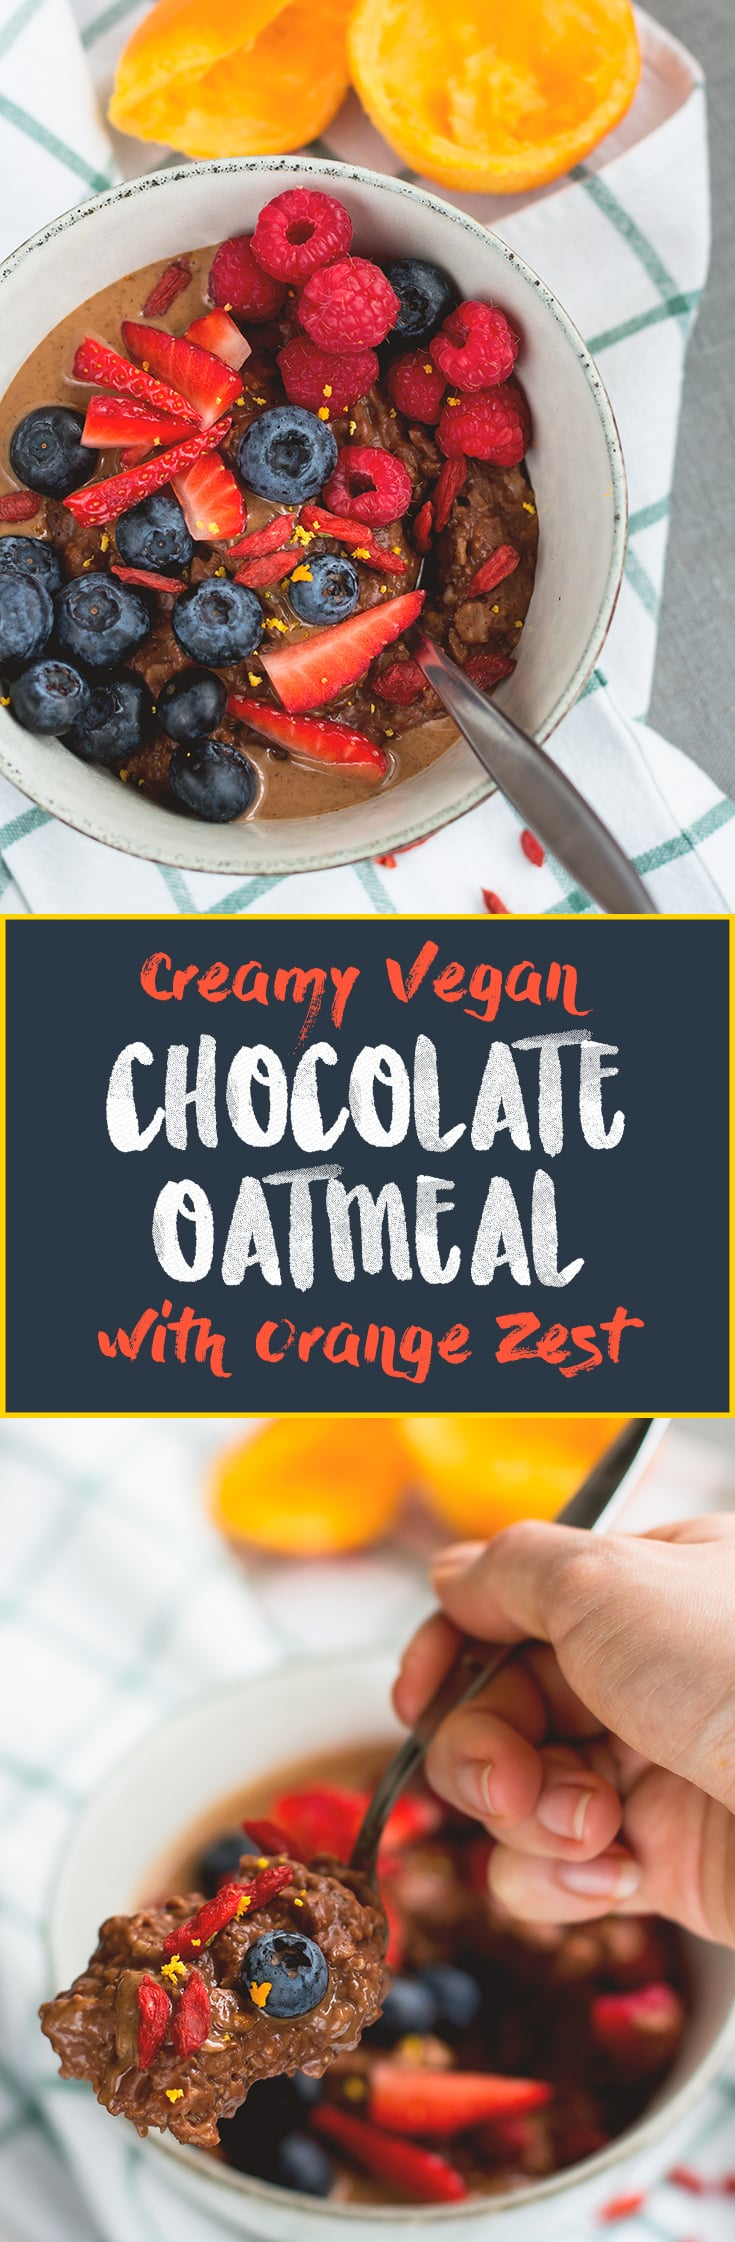 Chocolate Oatmeal with Orange Zest - delicious chocolatey oatmeal recipes that's easy to make and really tasty! I love the orange chocolate combiniation! This literally tastes like a dessert. Vegan, gluten-free, and good for you! | thehealthfulideas.com